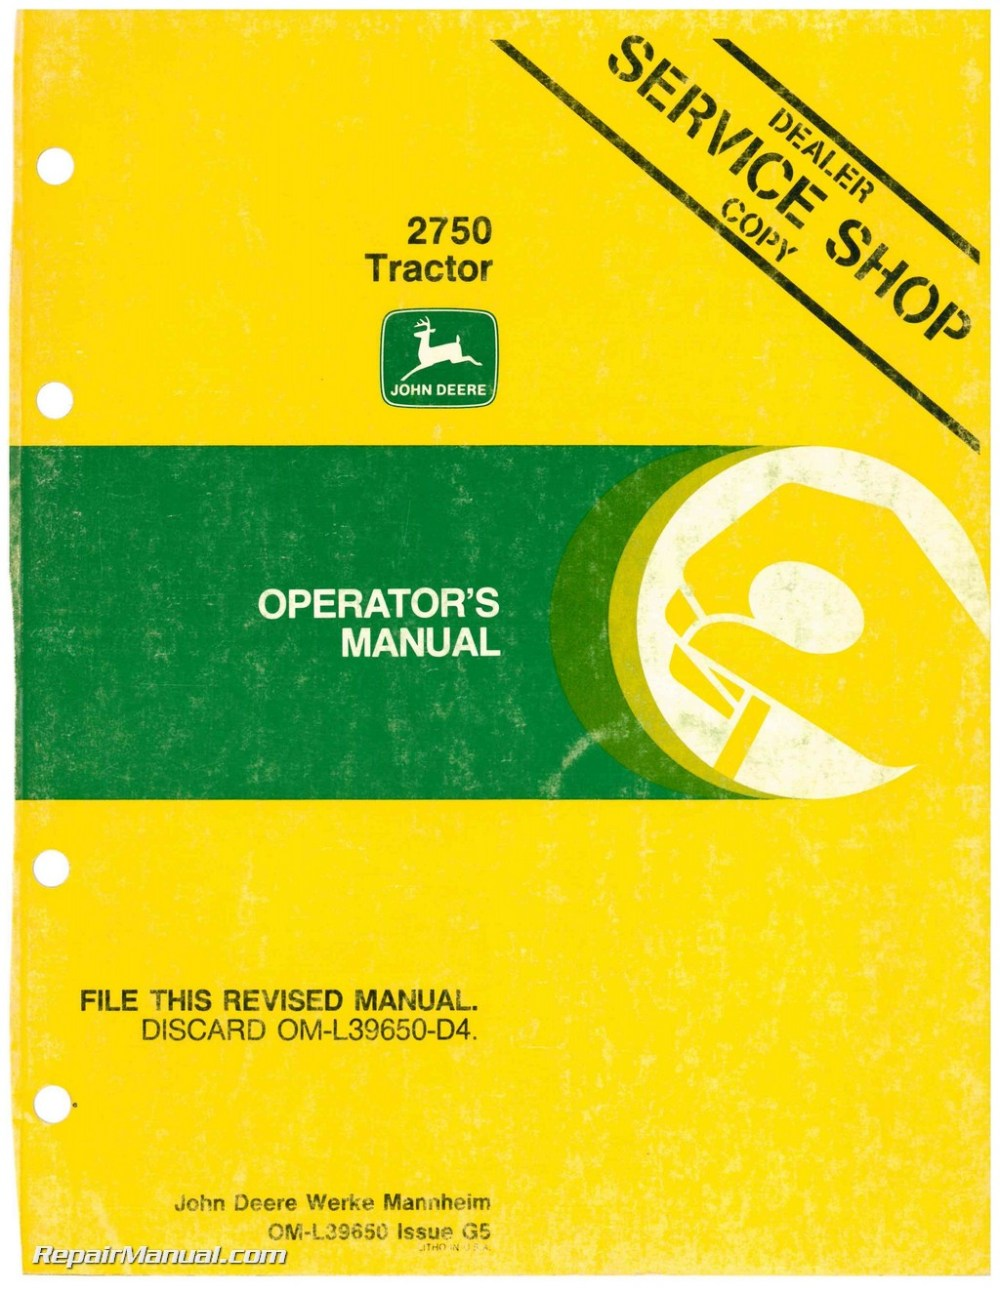 medium resolution of john deere 2750 tractor operators manual john deere 1010 wiring diagram john deere 2750 tractor operators